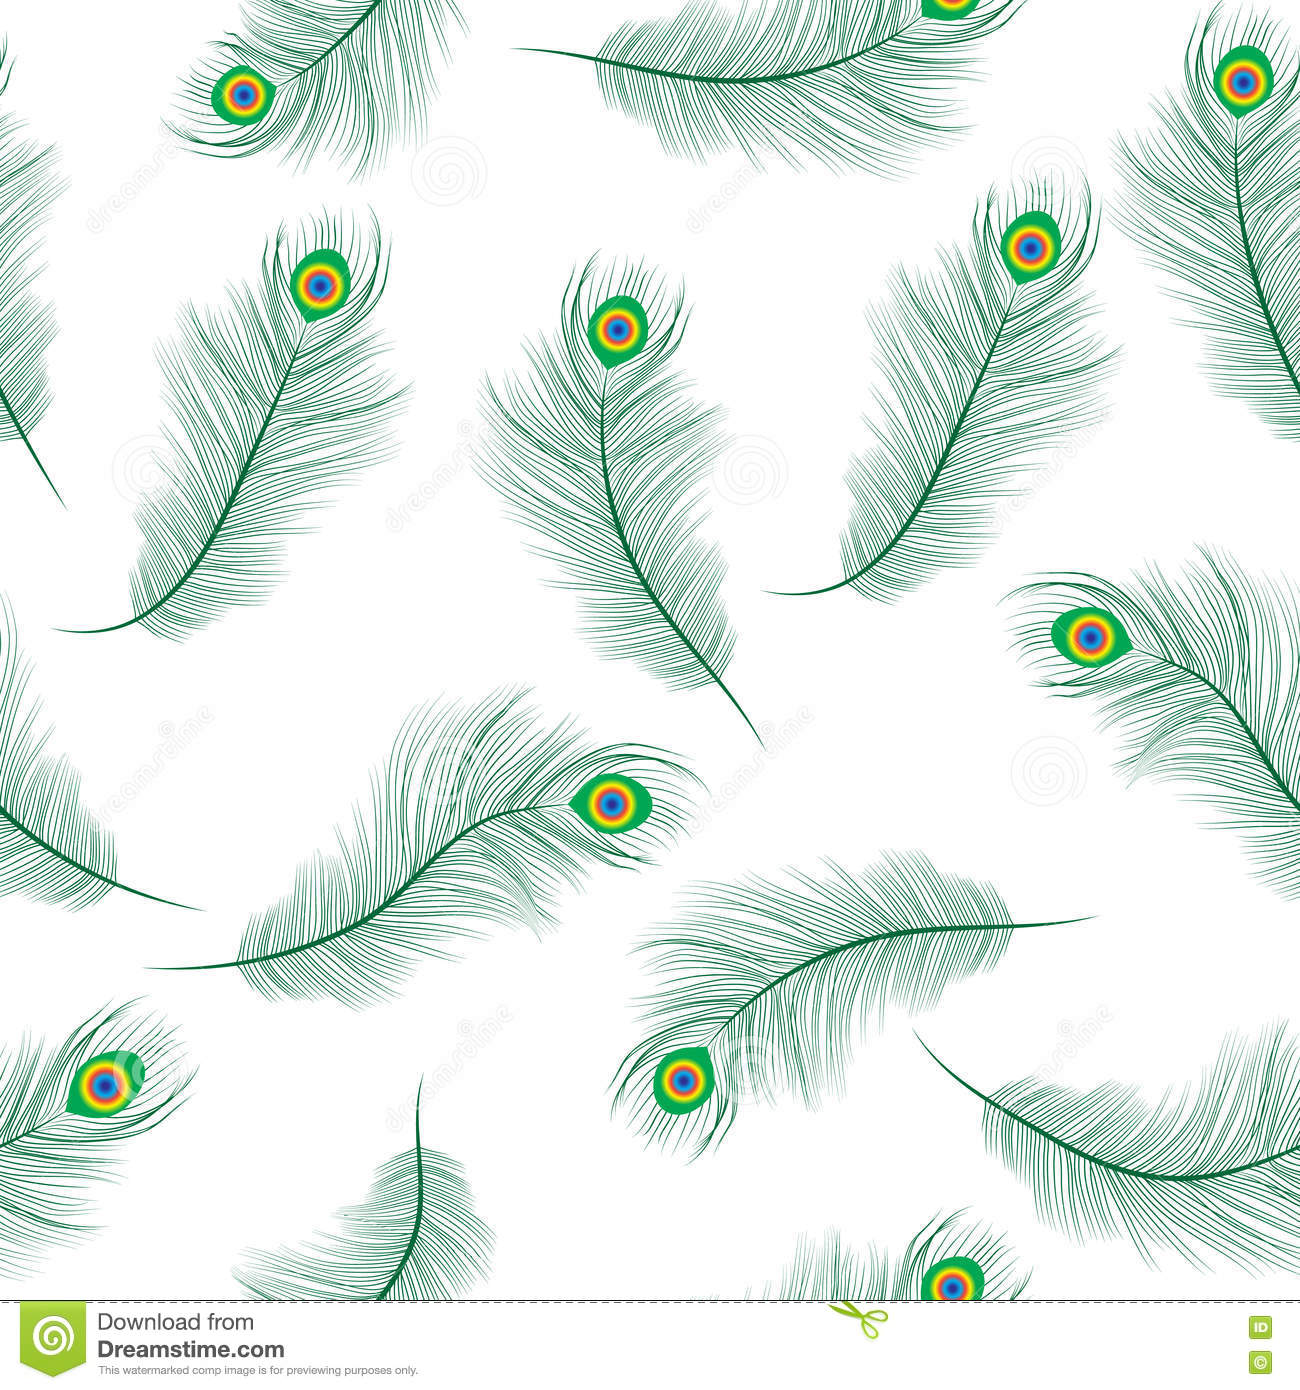 Peacock Feather Seamless Texture, Peacock Feathers